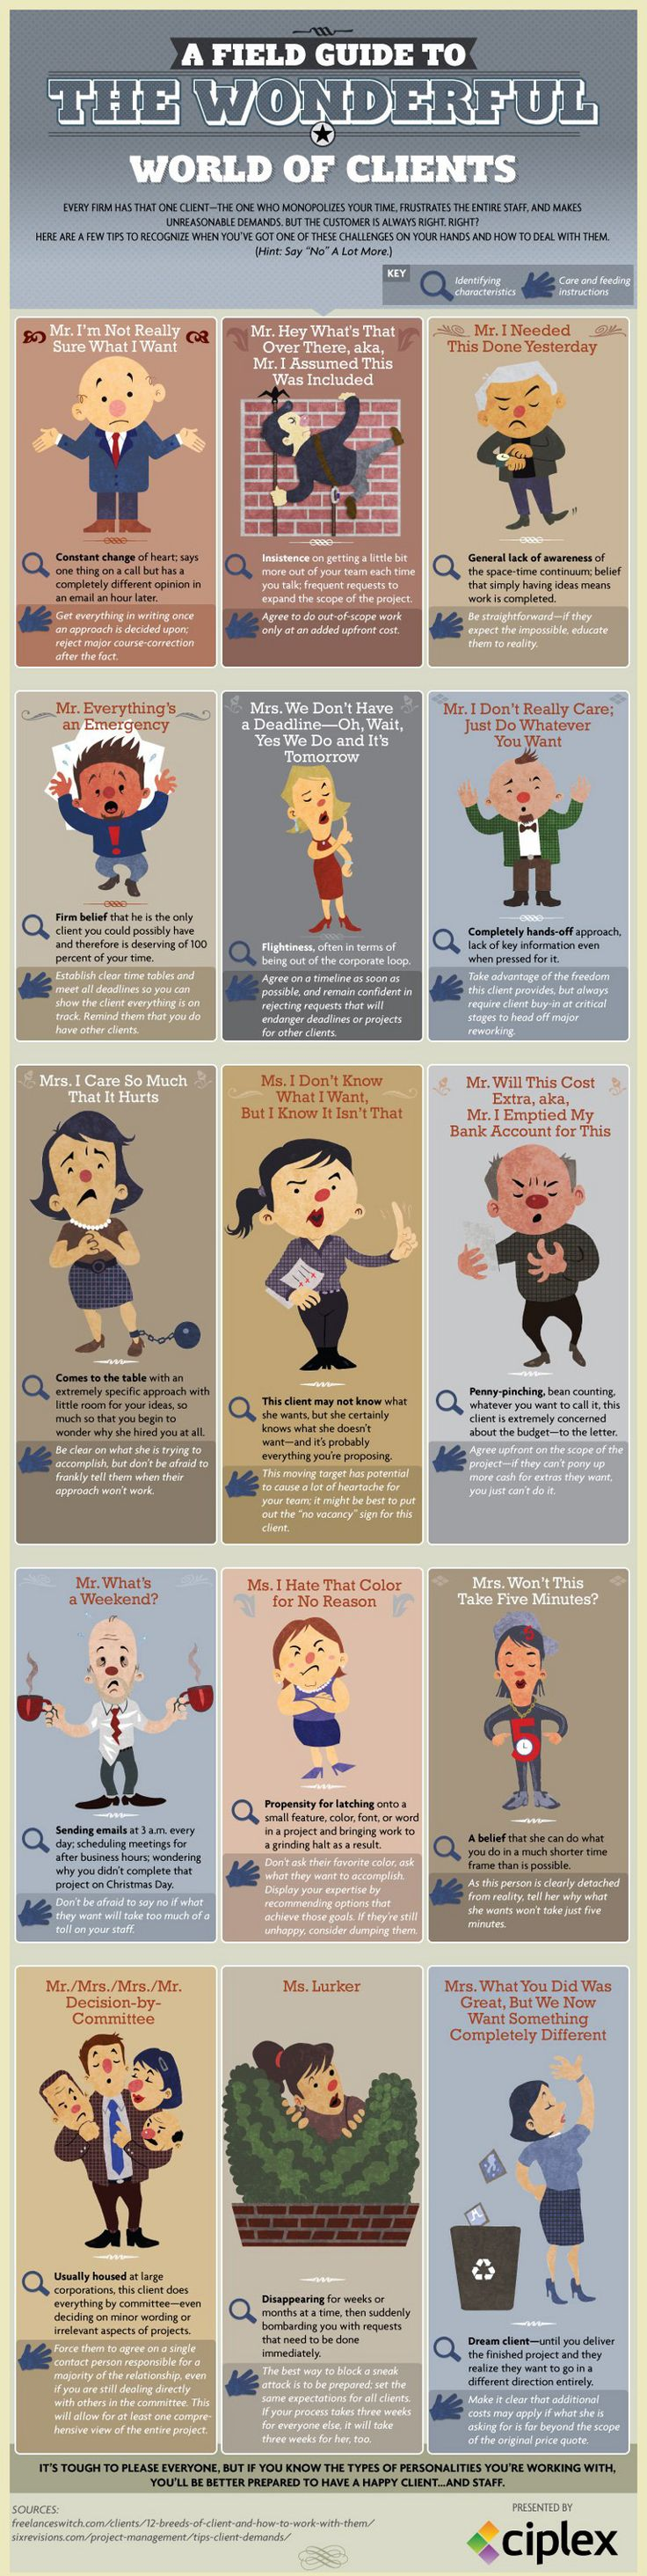 Customer Personality Types and Types of Customer Relationships